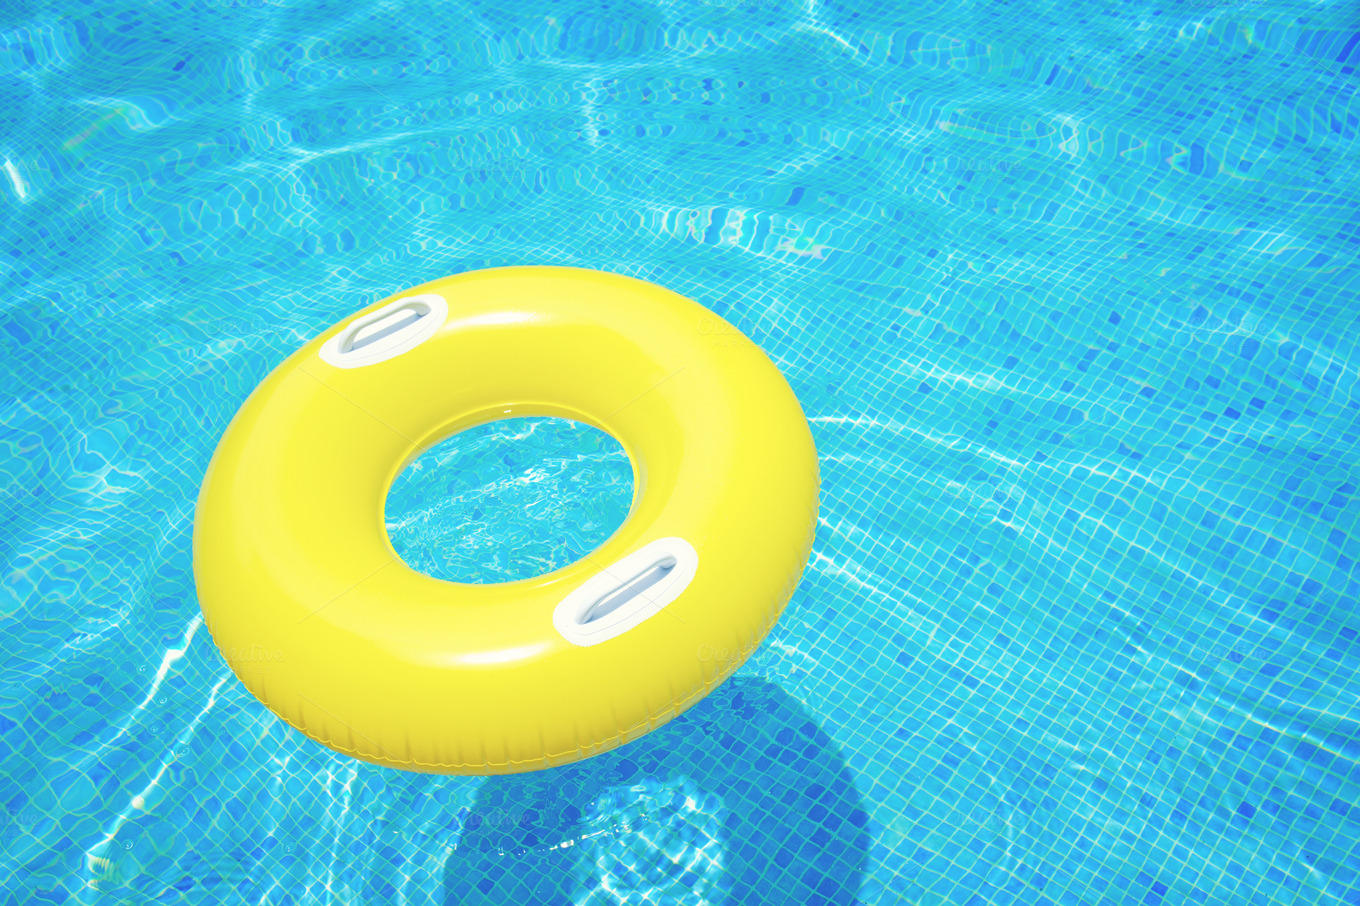 Rubber Ring In Pool Nature Photos On Creative Market